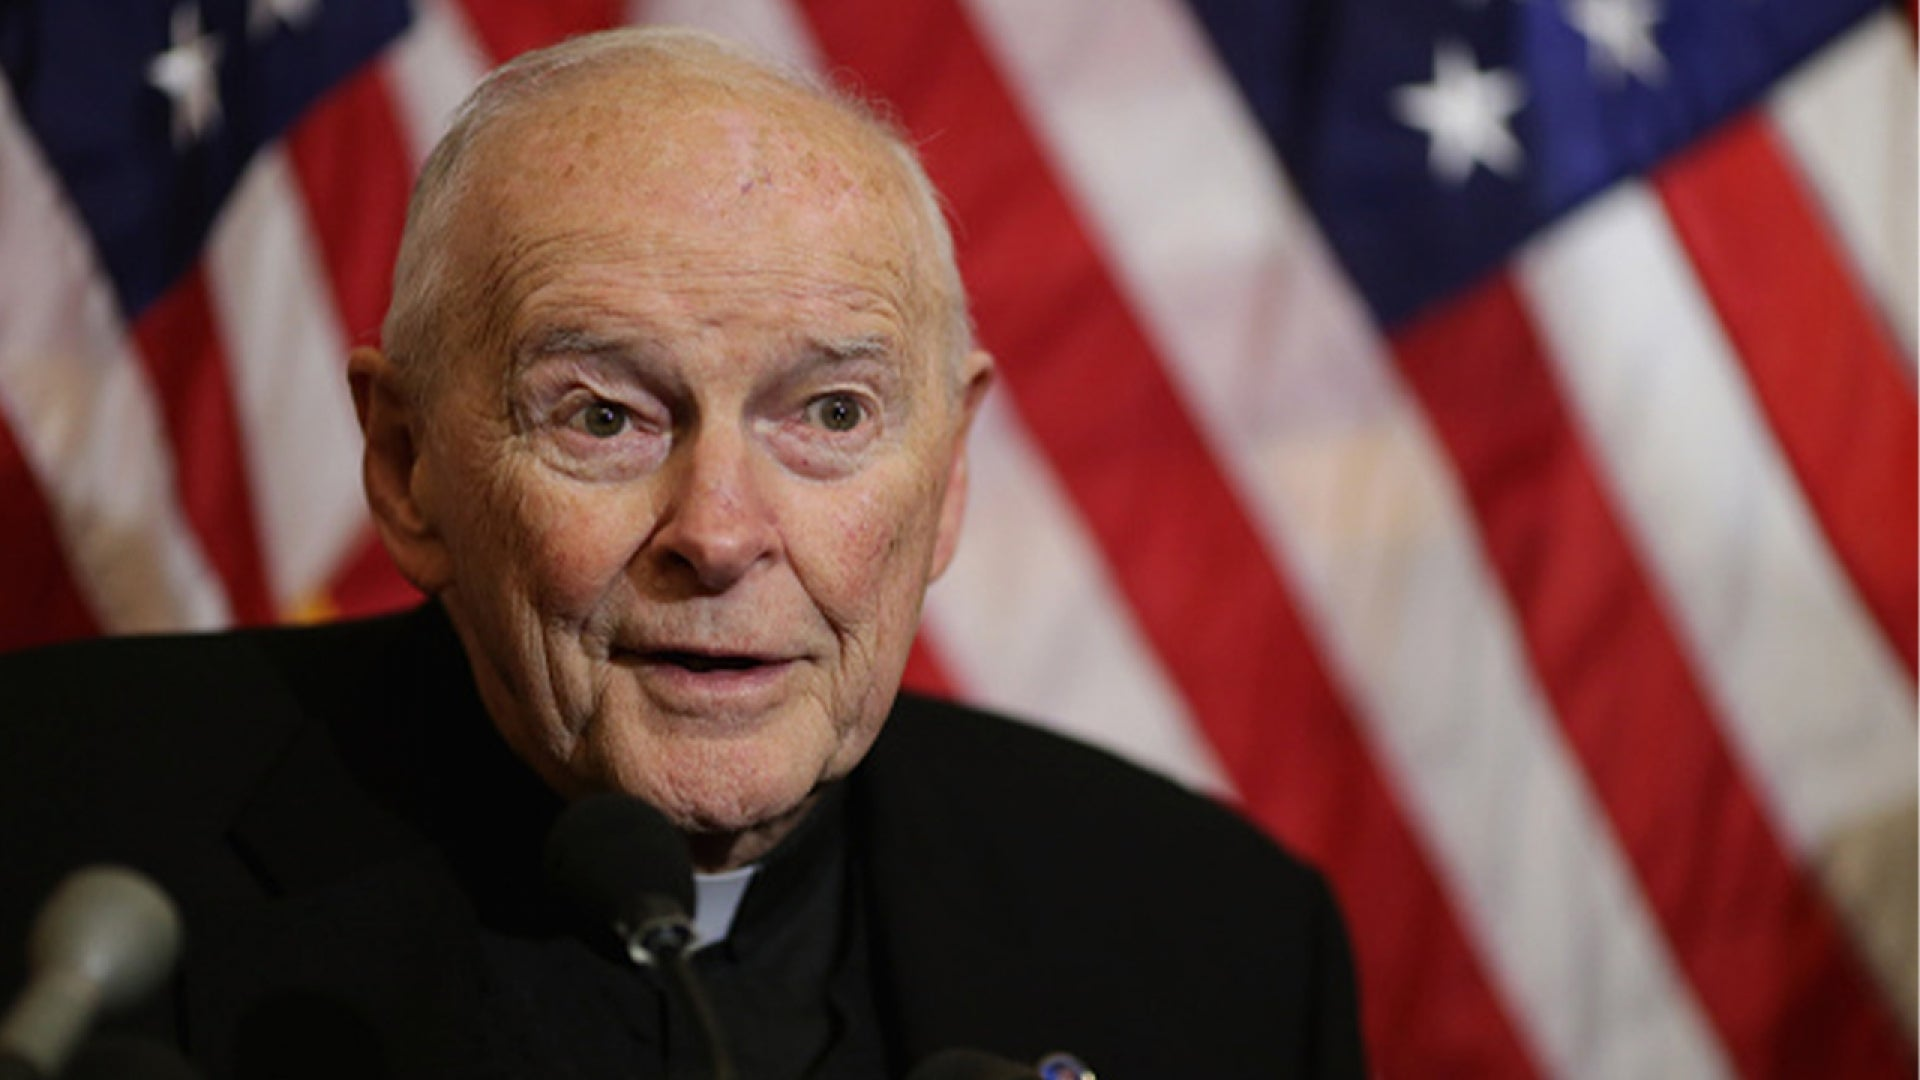 Ex-Cardinal McCarrick's Alleged Victim Made 'World a Safer Place for Children' by Coming Forward, Lawyer Says